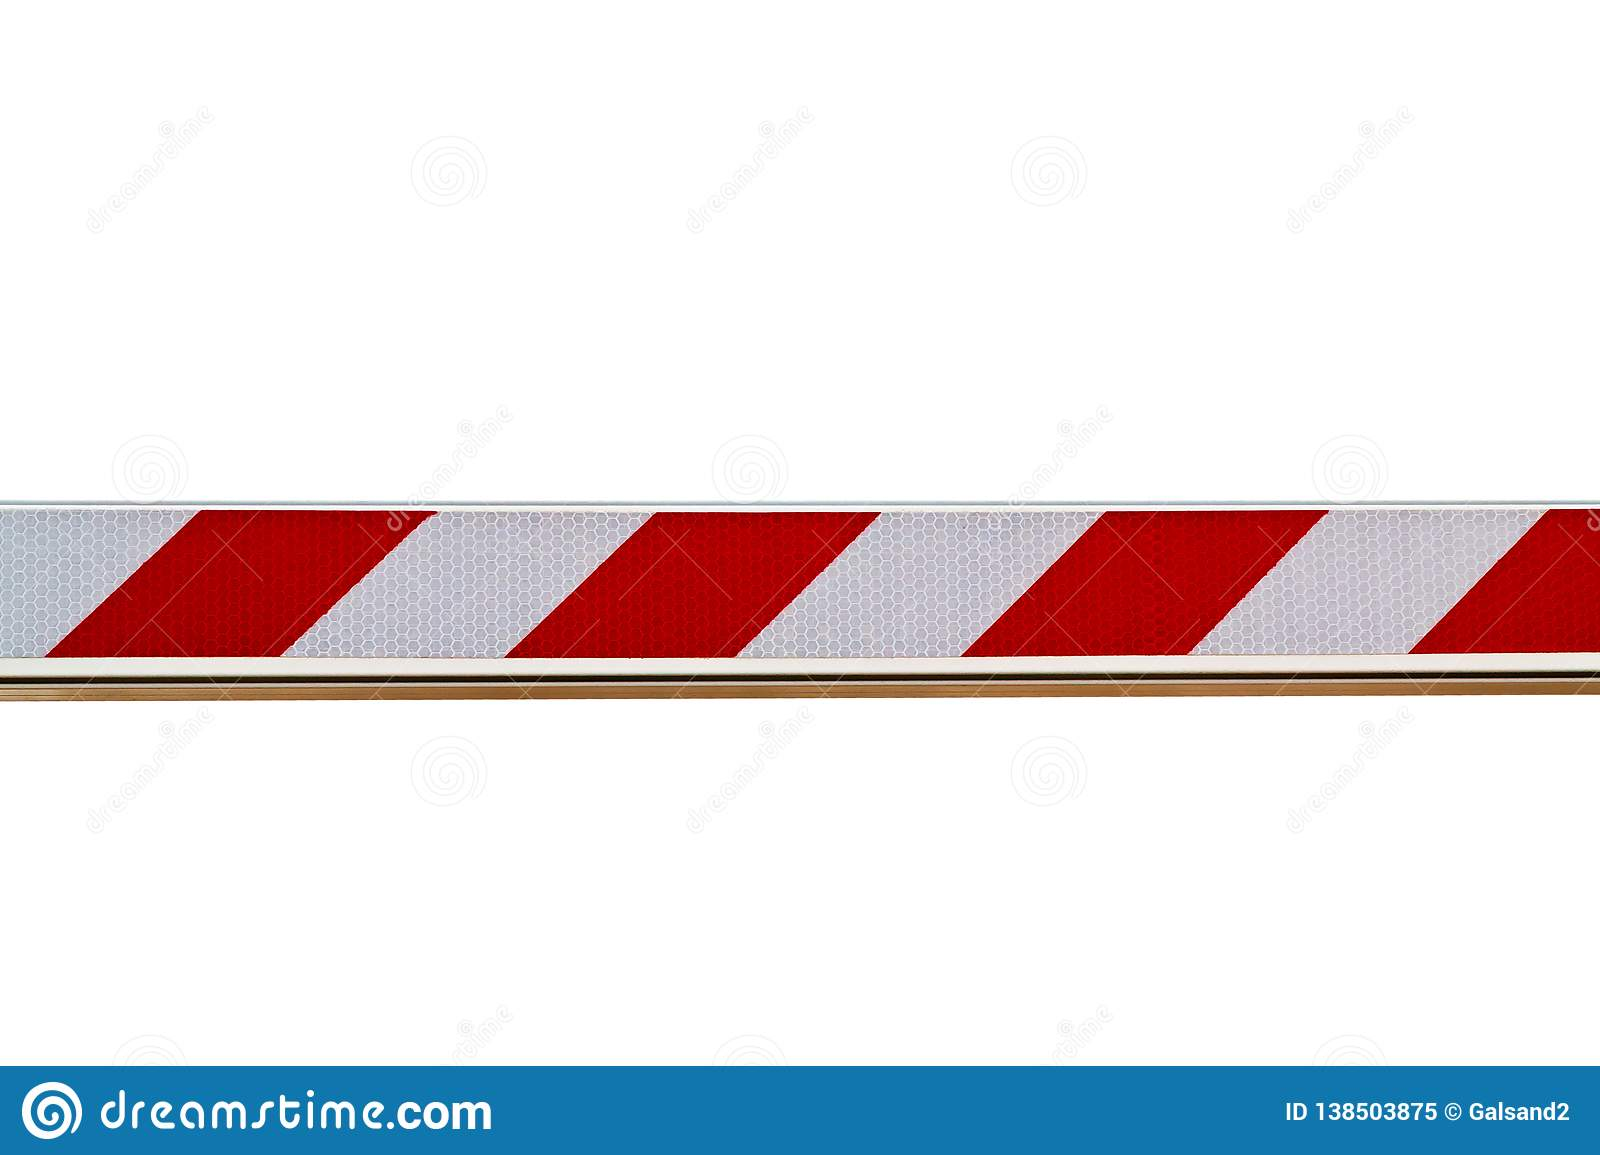 Red and white striped barrier isolated on white background